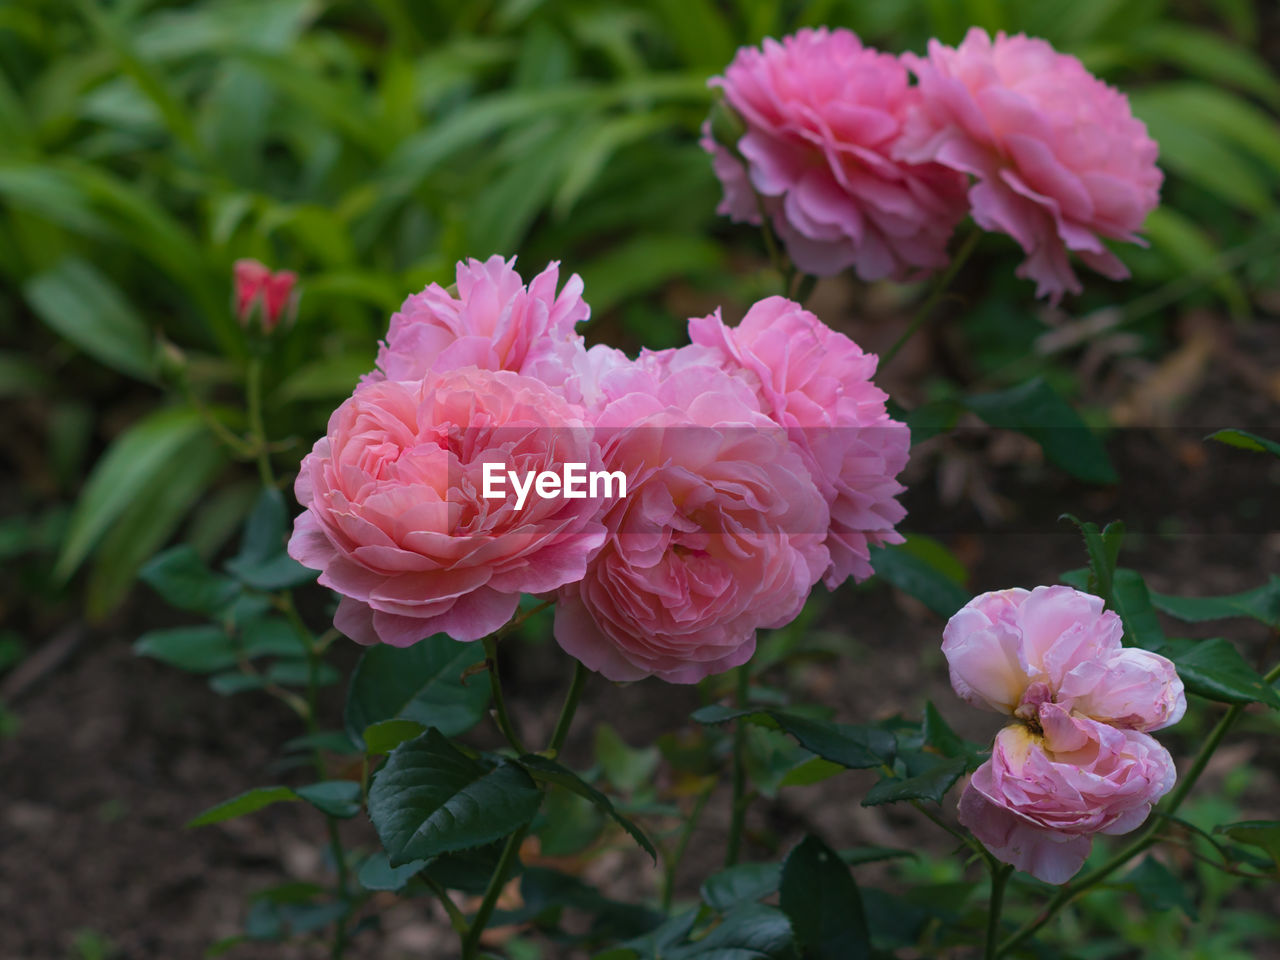 flower, beauty in nature, plant, flowering plant, vulnerability, fragility, petal, freshness, pink color, close-up, growth, flower head, inflorescence, nature, rose, leaf, plant part, rose - flower, focus on foreground, no people, outdoors